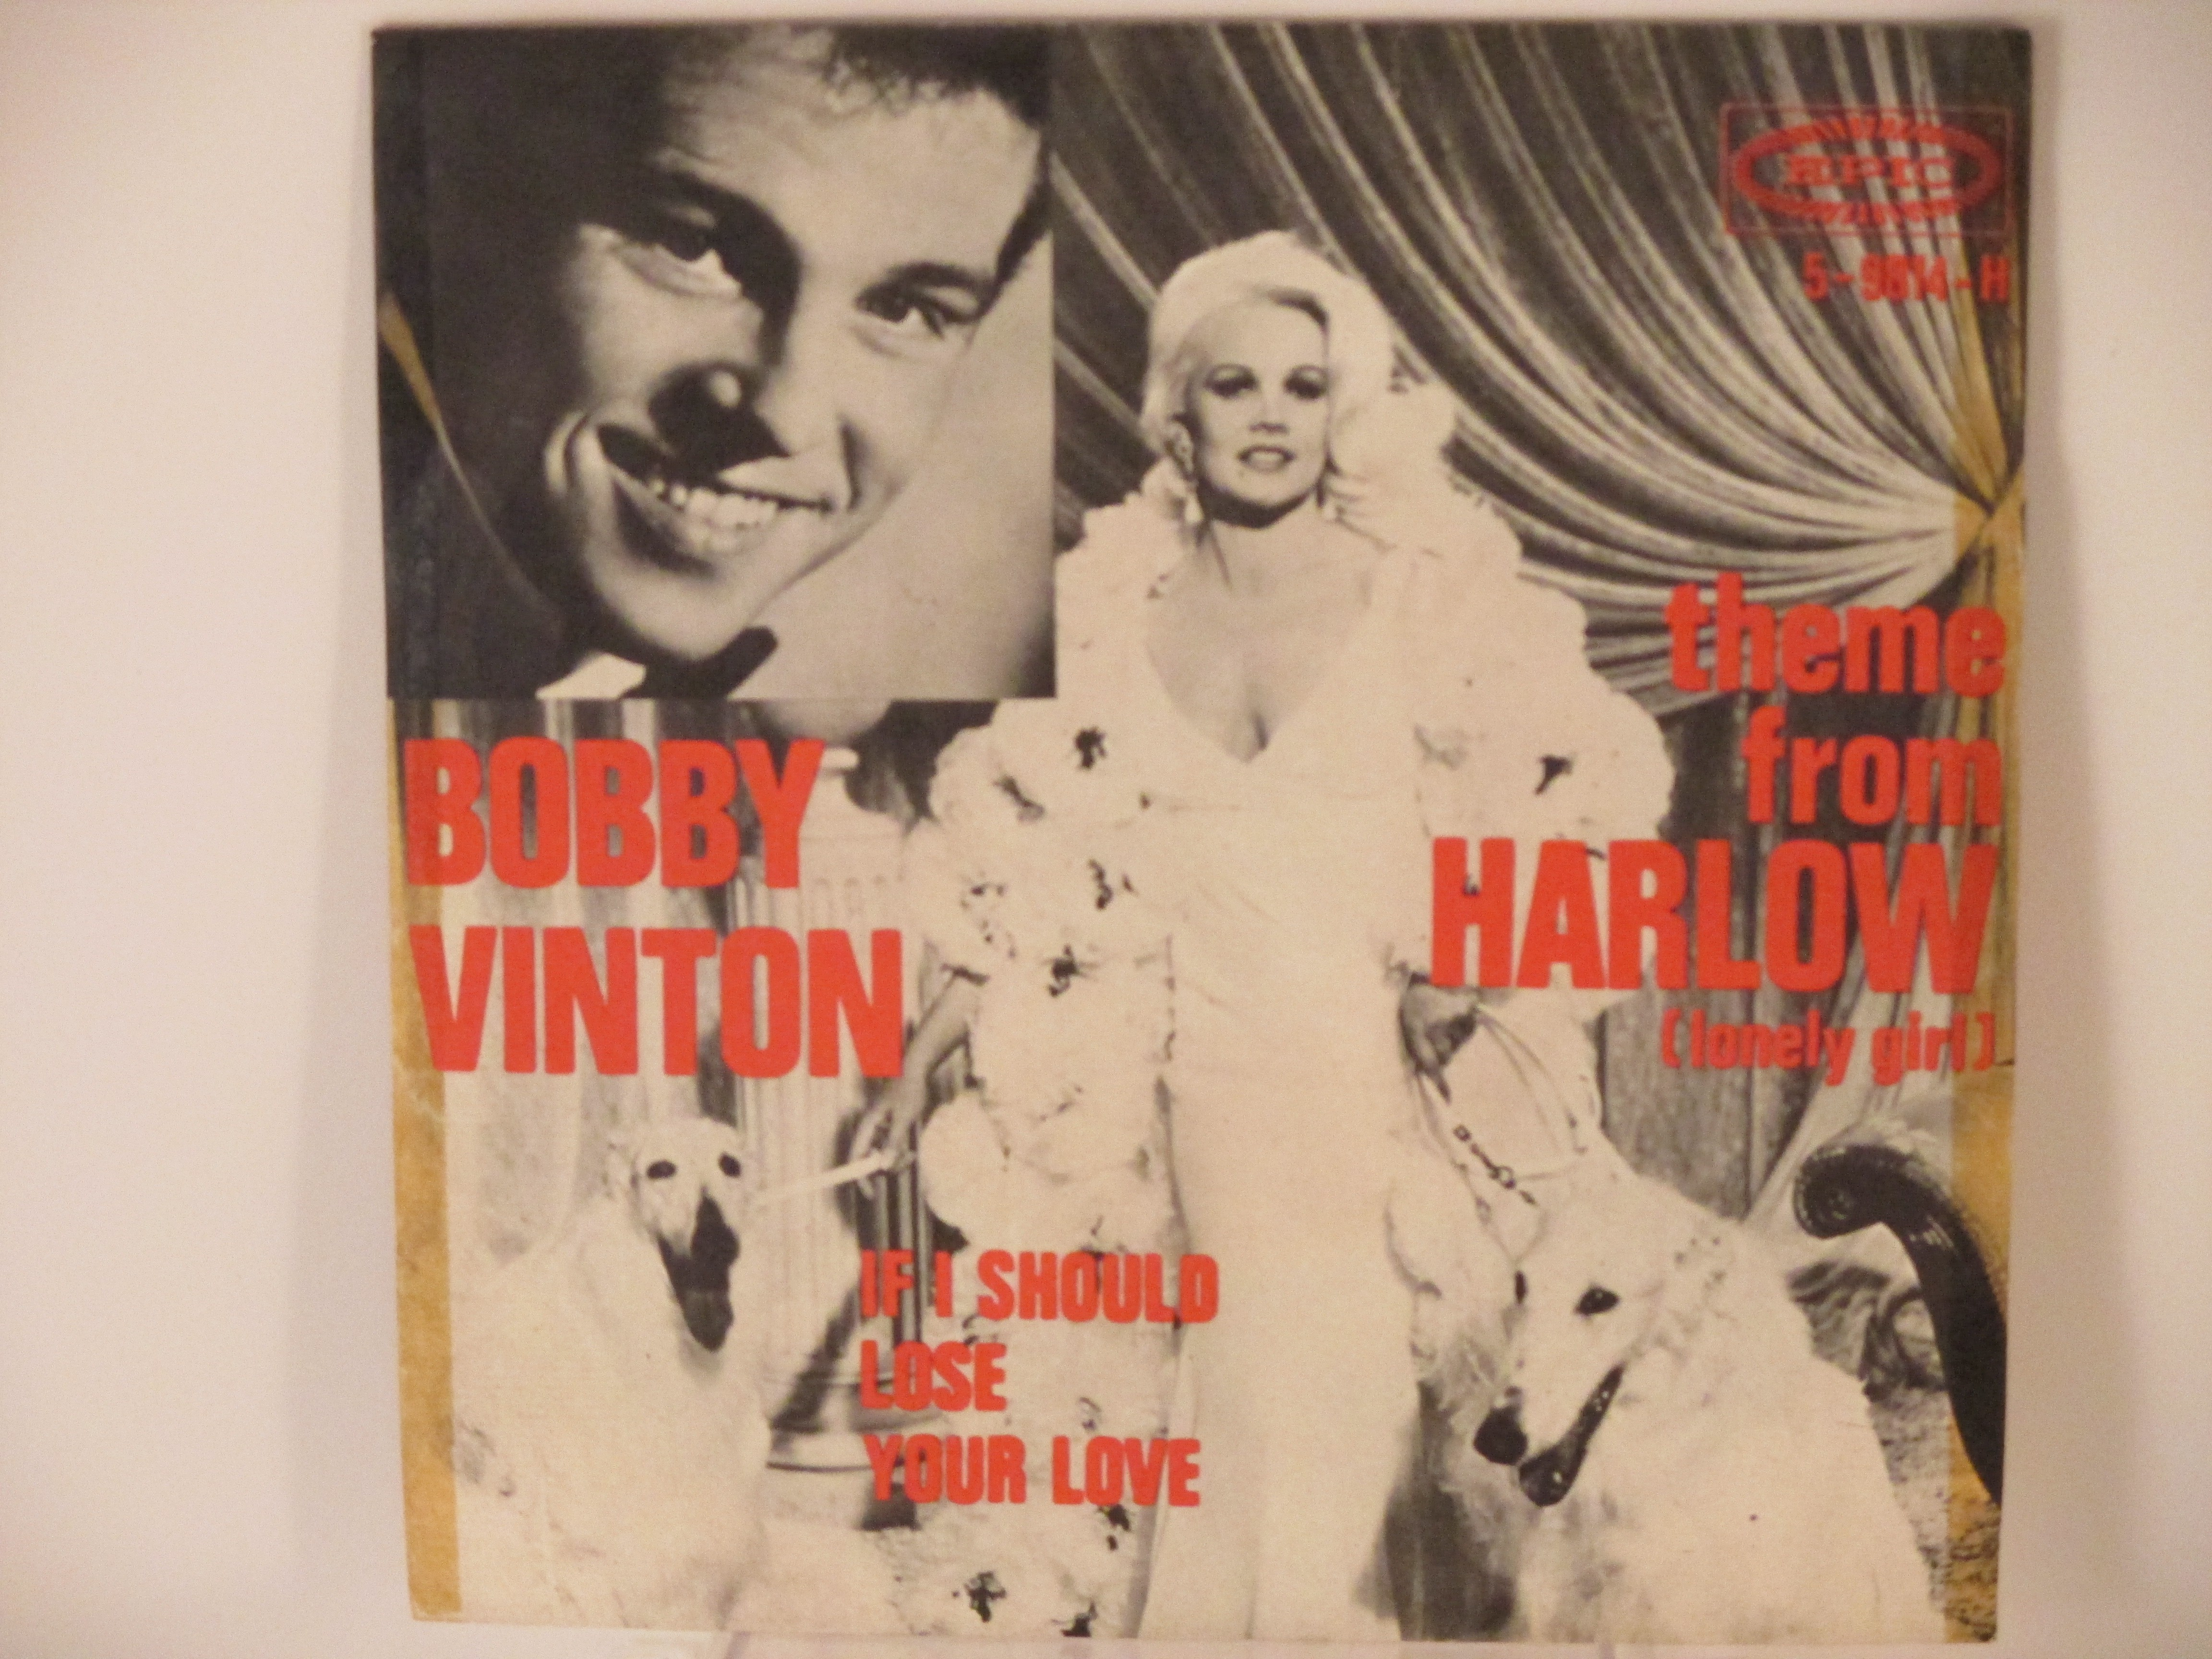 "BOBBY VINTON : Theme from ""Harlow"" (Lonely girl) / If I should lose your love"